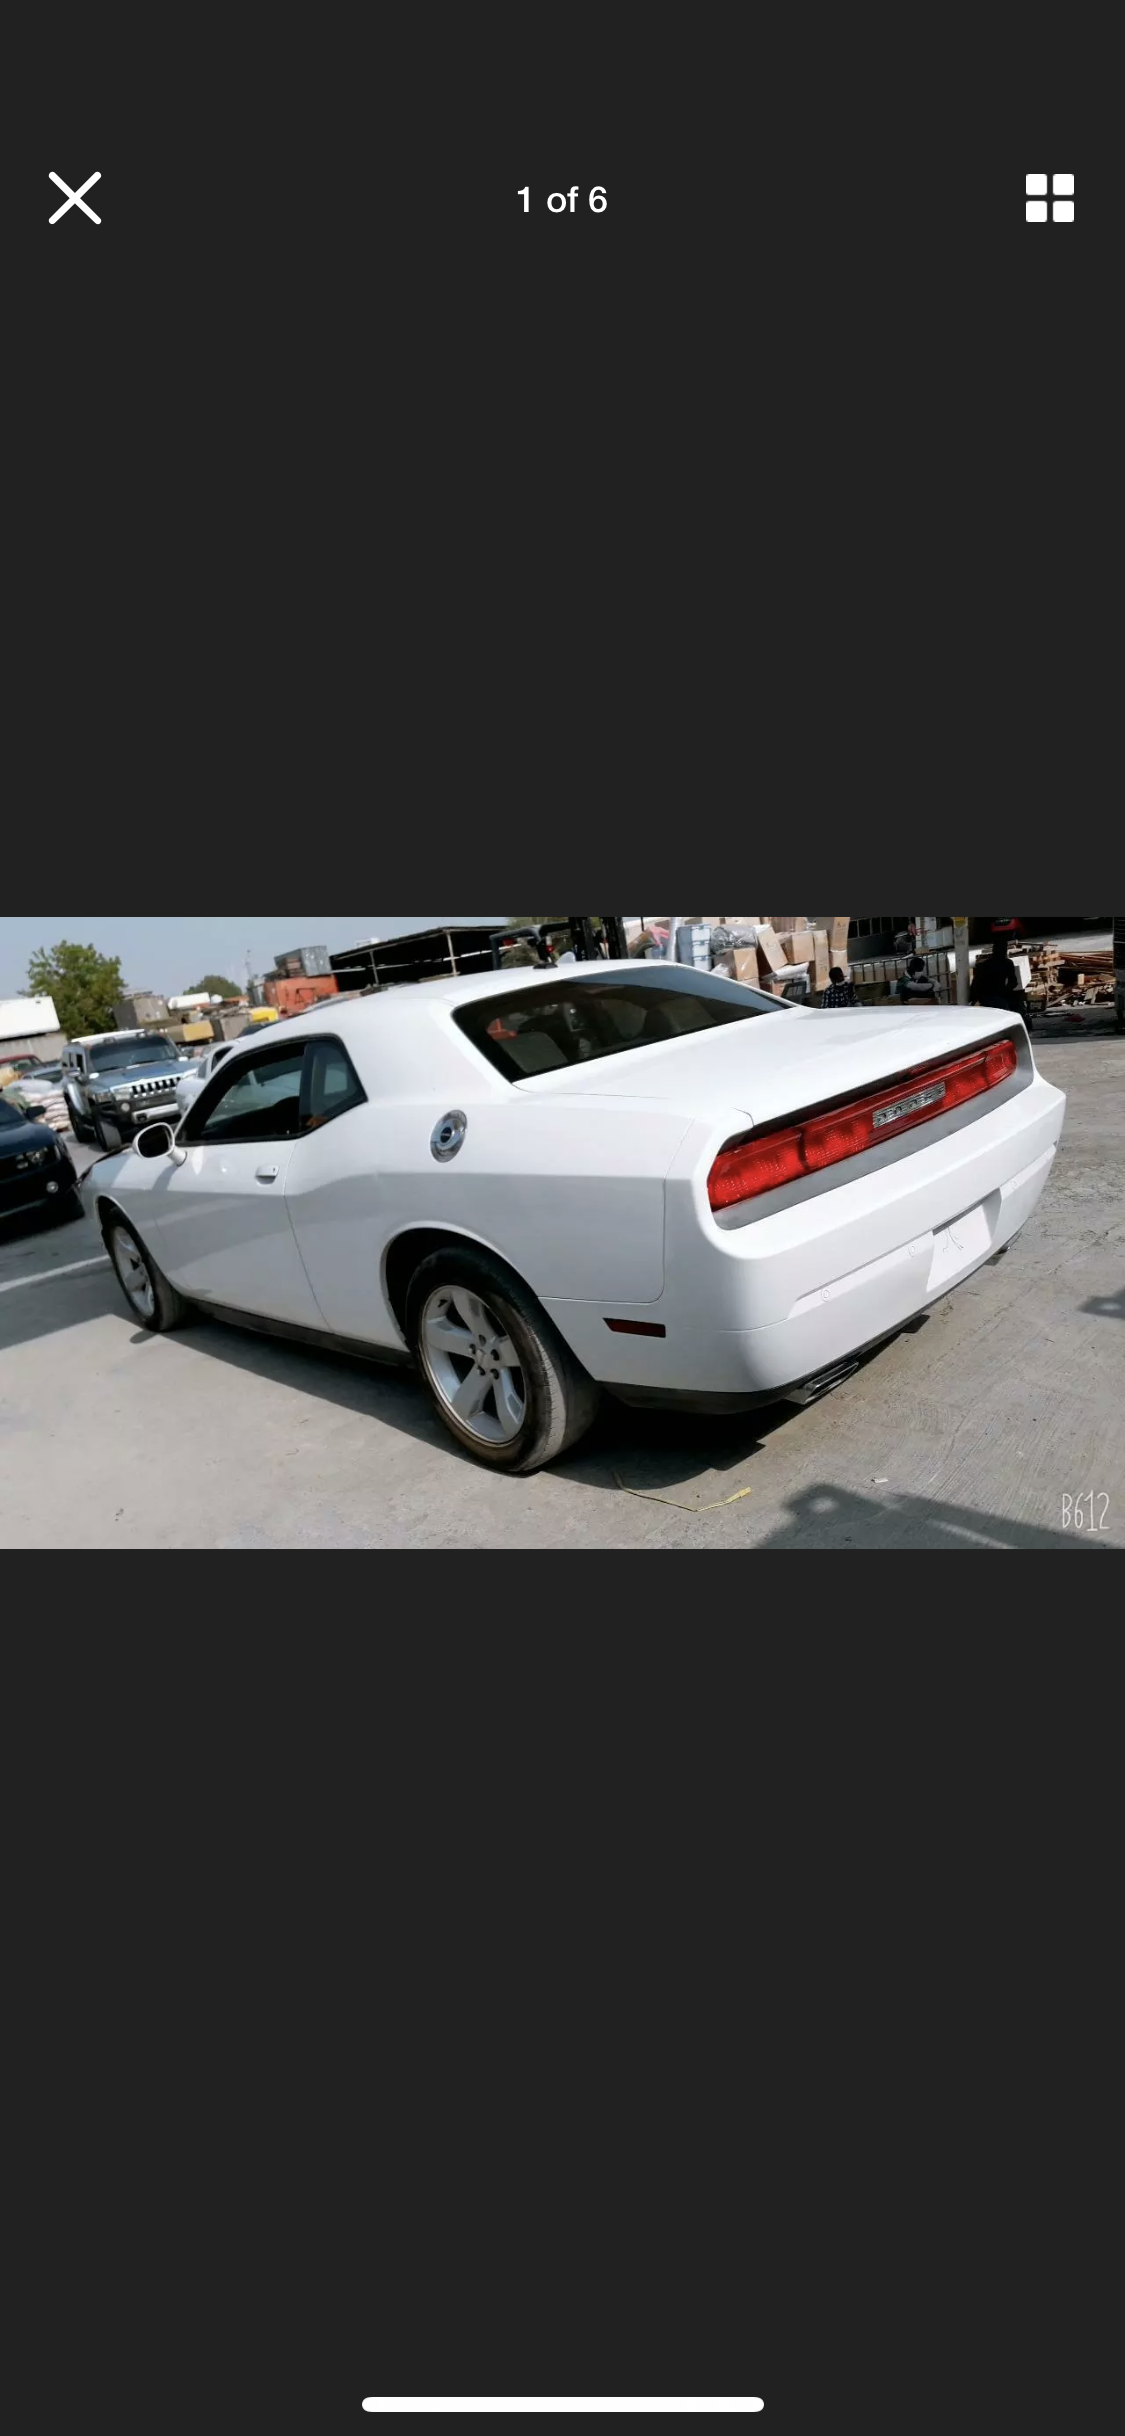 2013 DODGE CHALLENGER 3.6 AUTO NOT HEMI LHD FRESH IMPORT For Sale (picture 1 of 6)